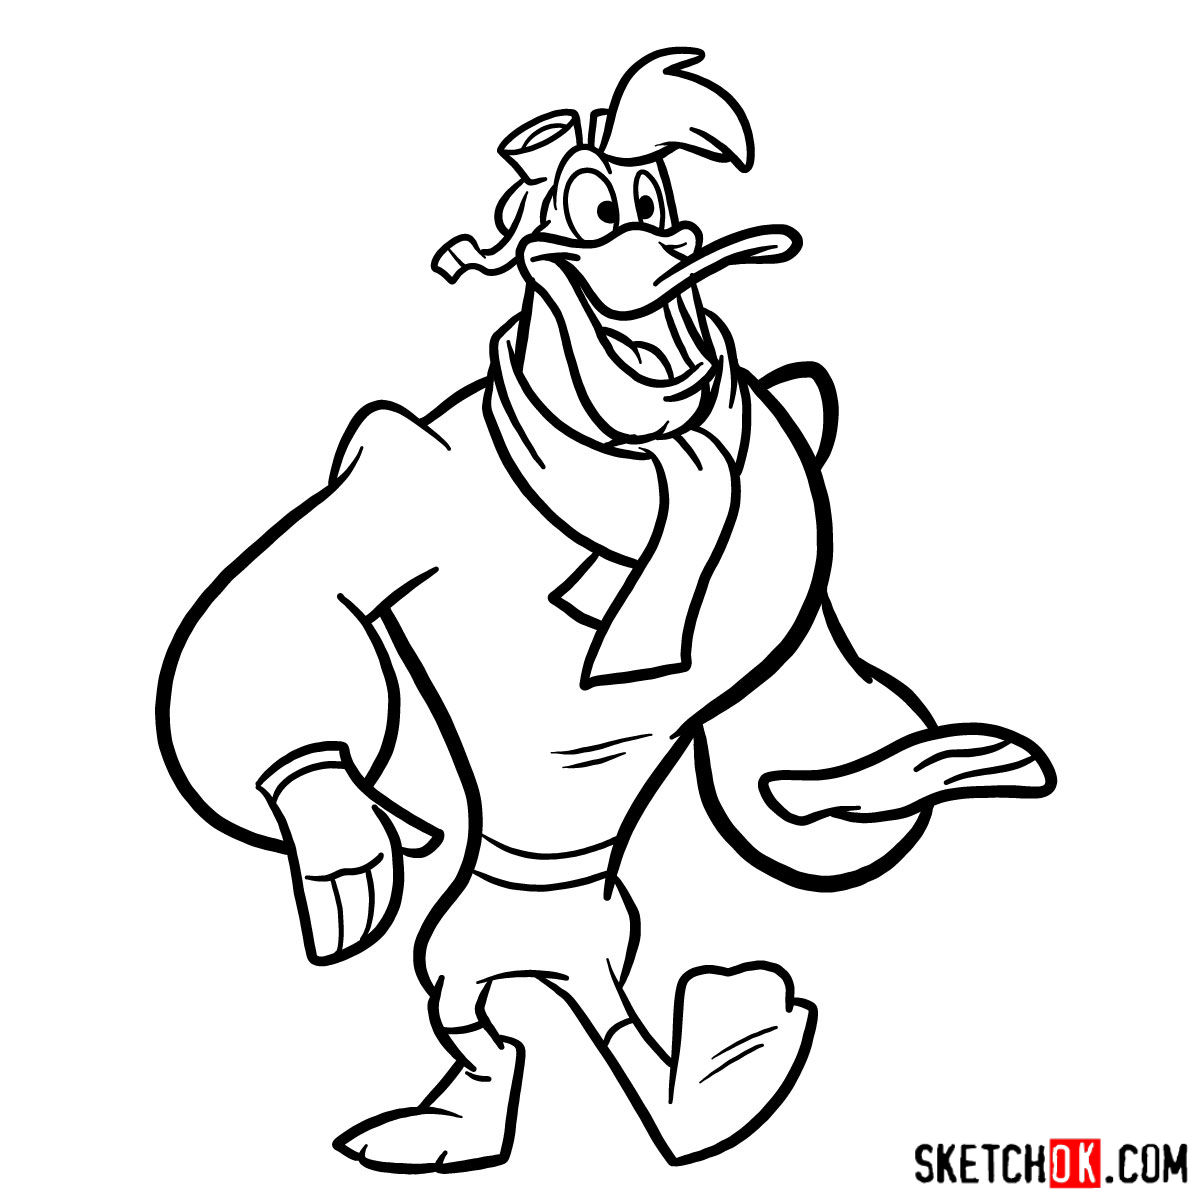 How to draw Launchpad McQuack - step 11